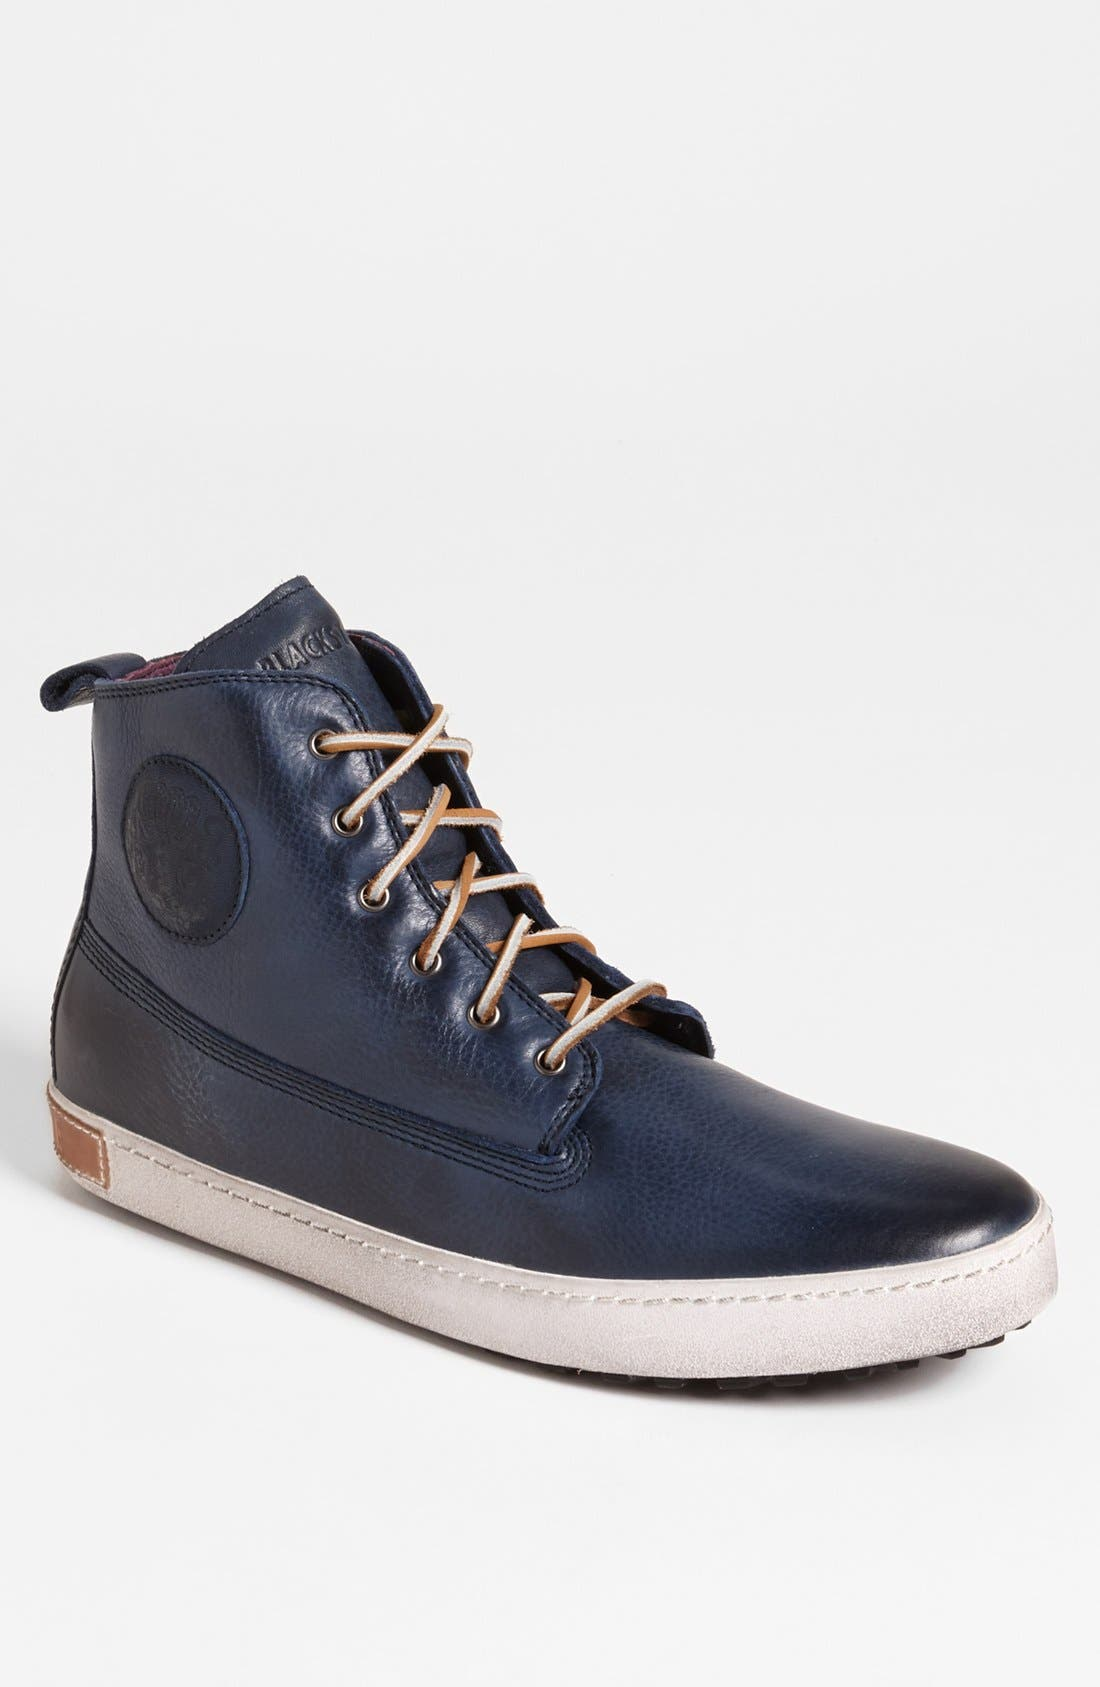 Main Image - Blackstone 'AM 02' High Top Sneaker